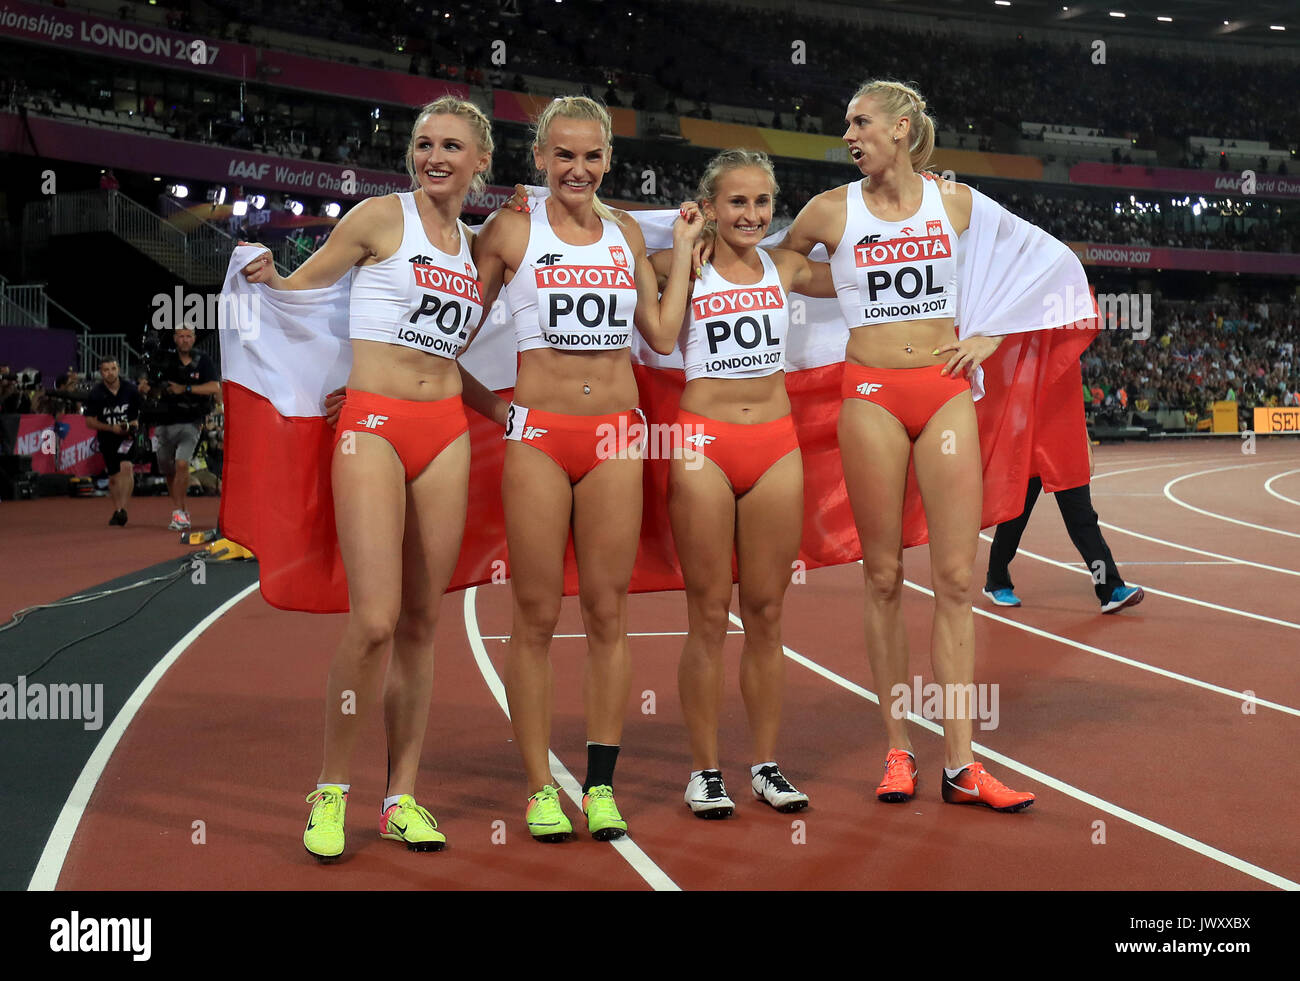 Poland Women's 4x400m relay final team (left to right) Alekandra Gaworska, Justyna Swiety, Malgorzata Holub and Iga Baumgart celebrate winning bronze during day ten of the 2017 IAAF World Championships at the London Stadium. PRESS ASSOCIATION Photo. Picture date: Sunday August 13, 2017. See PA story ATHLETICS World. Photo credit should read: Adam Davy/PA Wire. RESTRICTIONS: Editorial use only. No transmission of sound or moving images and no video simulation. - Stock Image